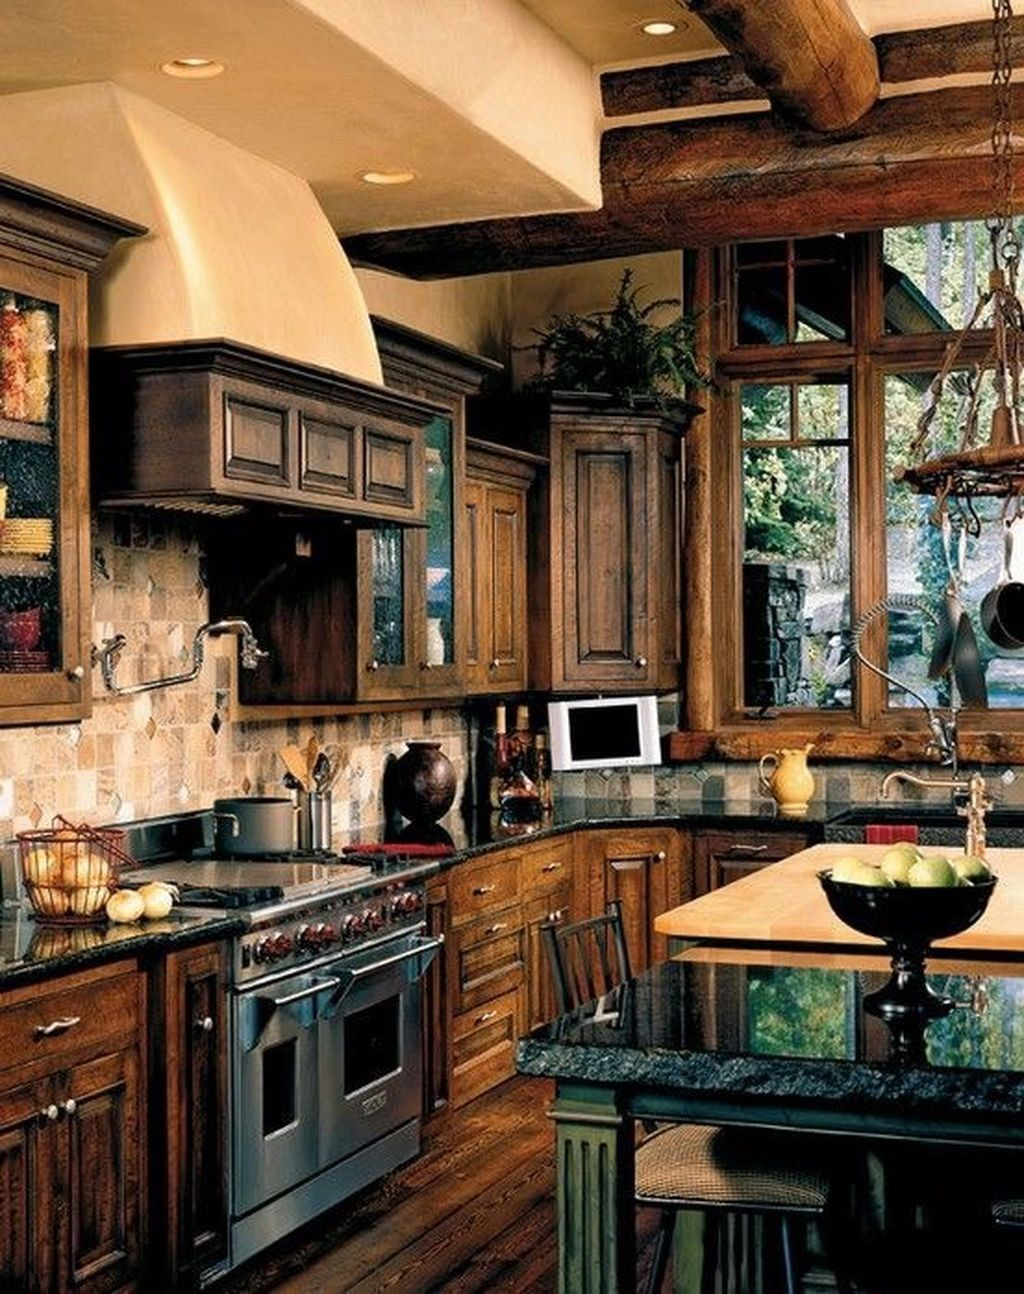 Clean And Simple Rustic Kitchen Decoration Ideas 04 | Cabañas